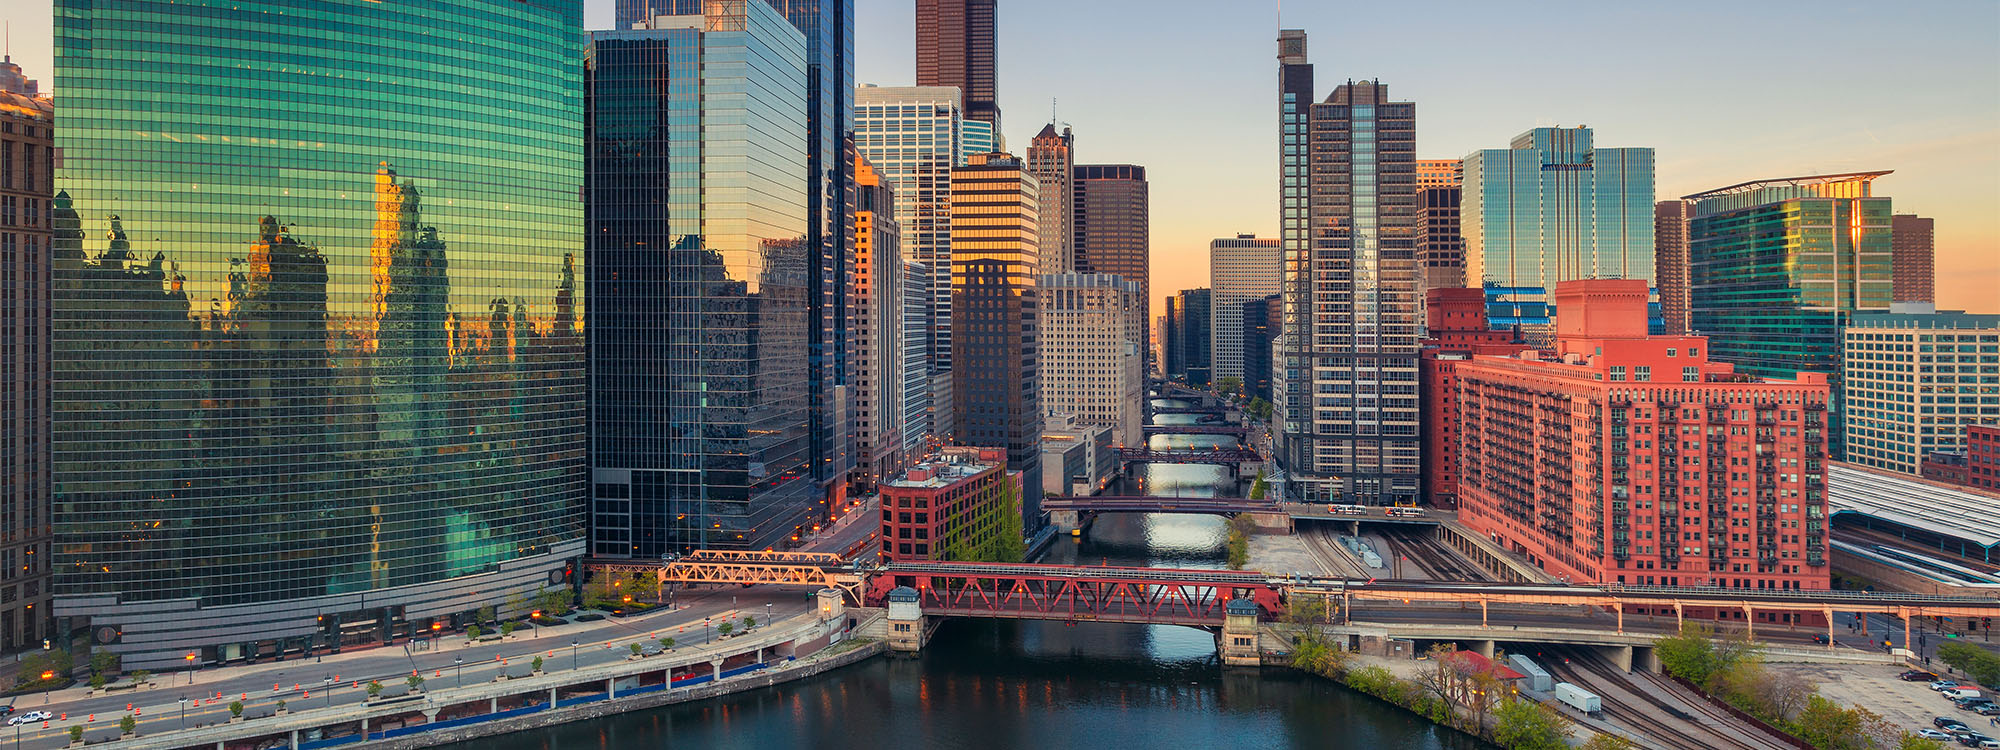 Title photo - 5 Ways to Explore Chicago Without Leaving Your Home